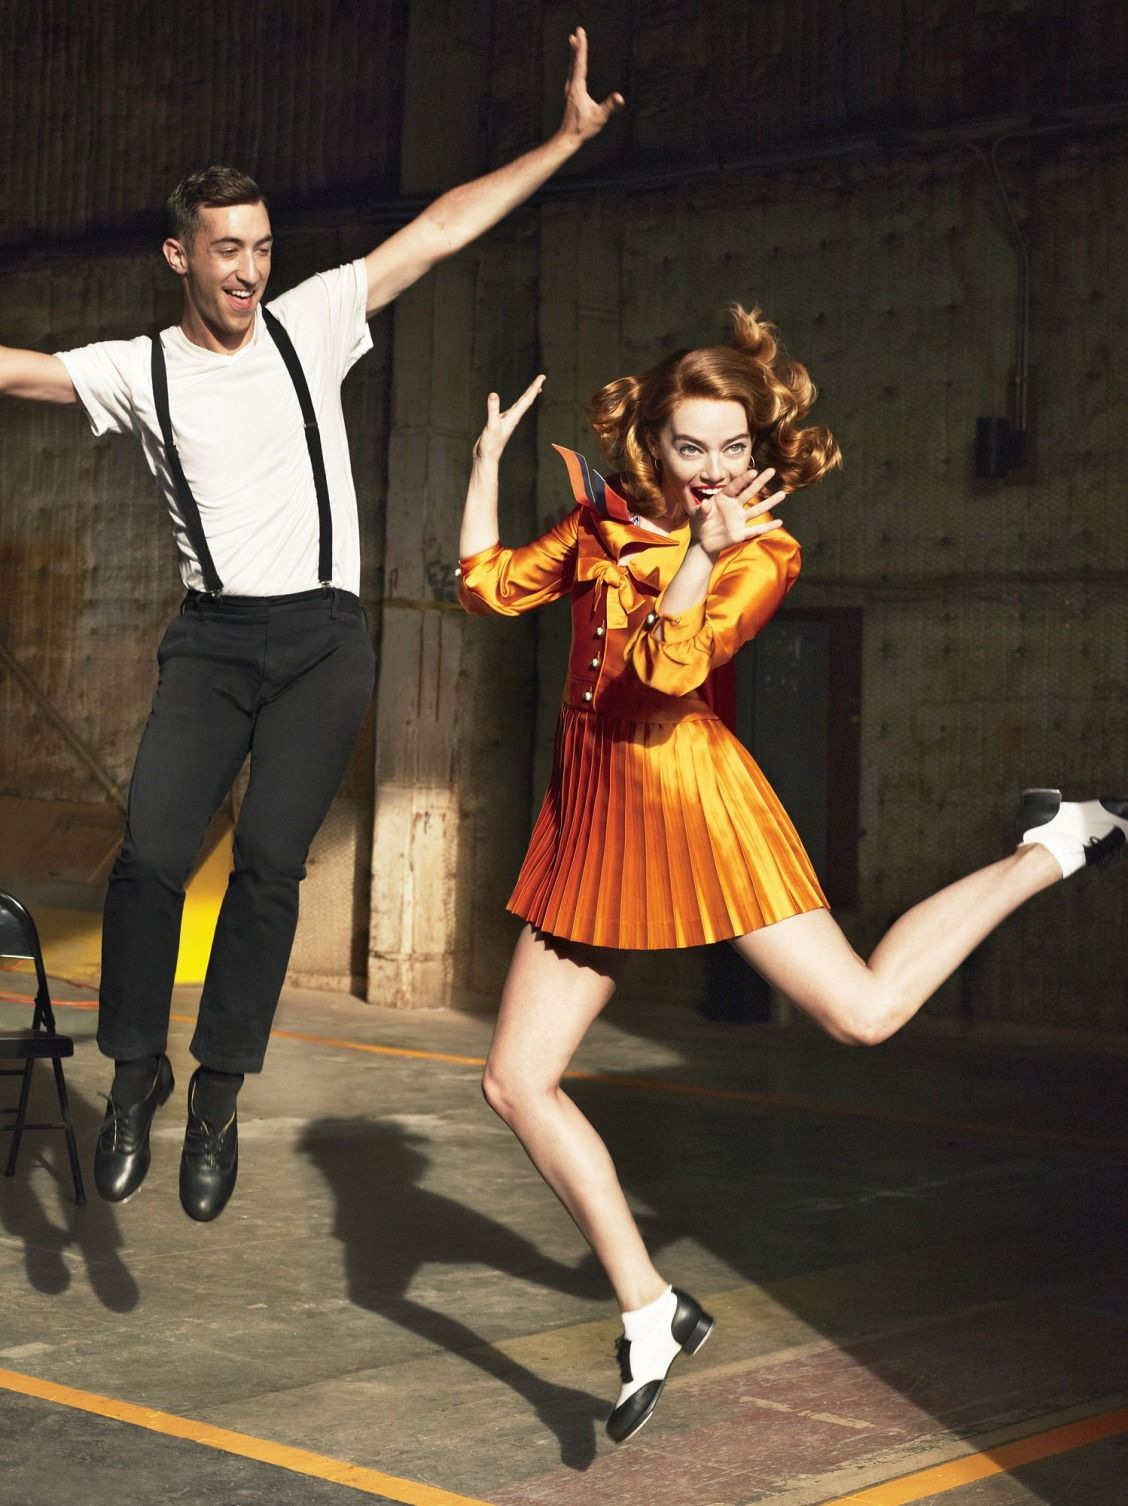 492d7e92547a Emma Stone Takes the Biggest Leap of Her Career With La La Land ...